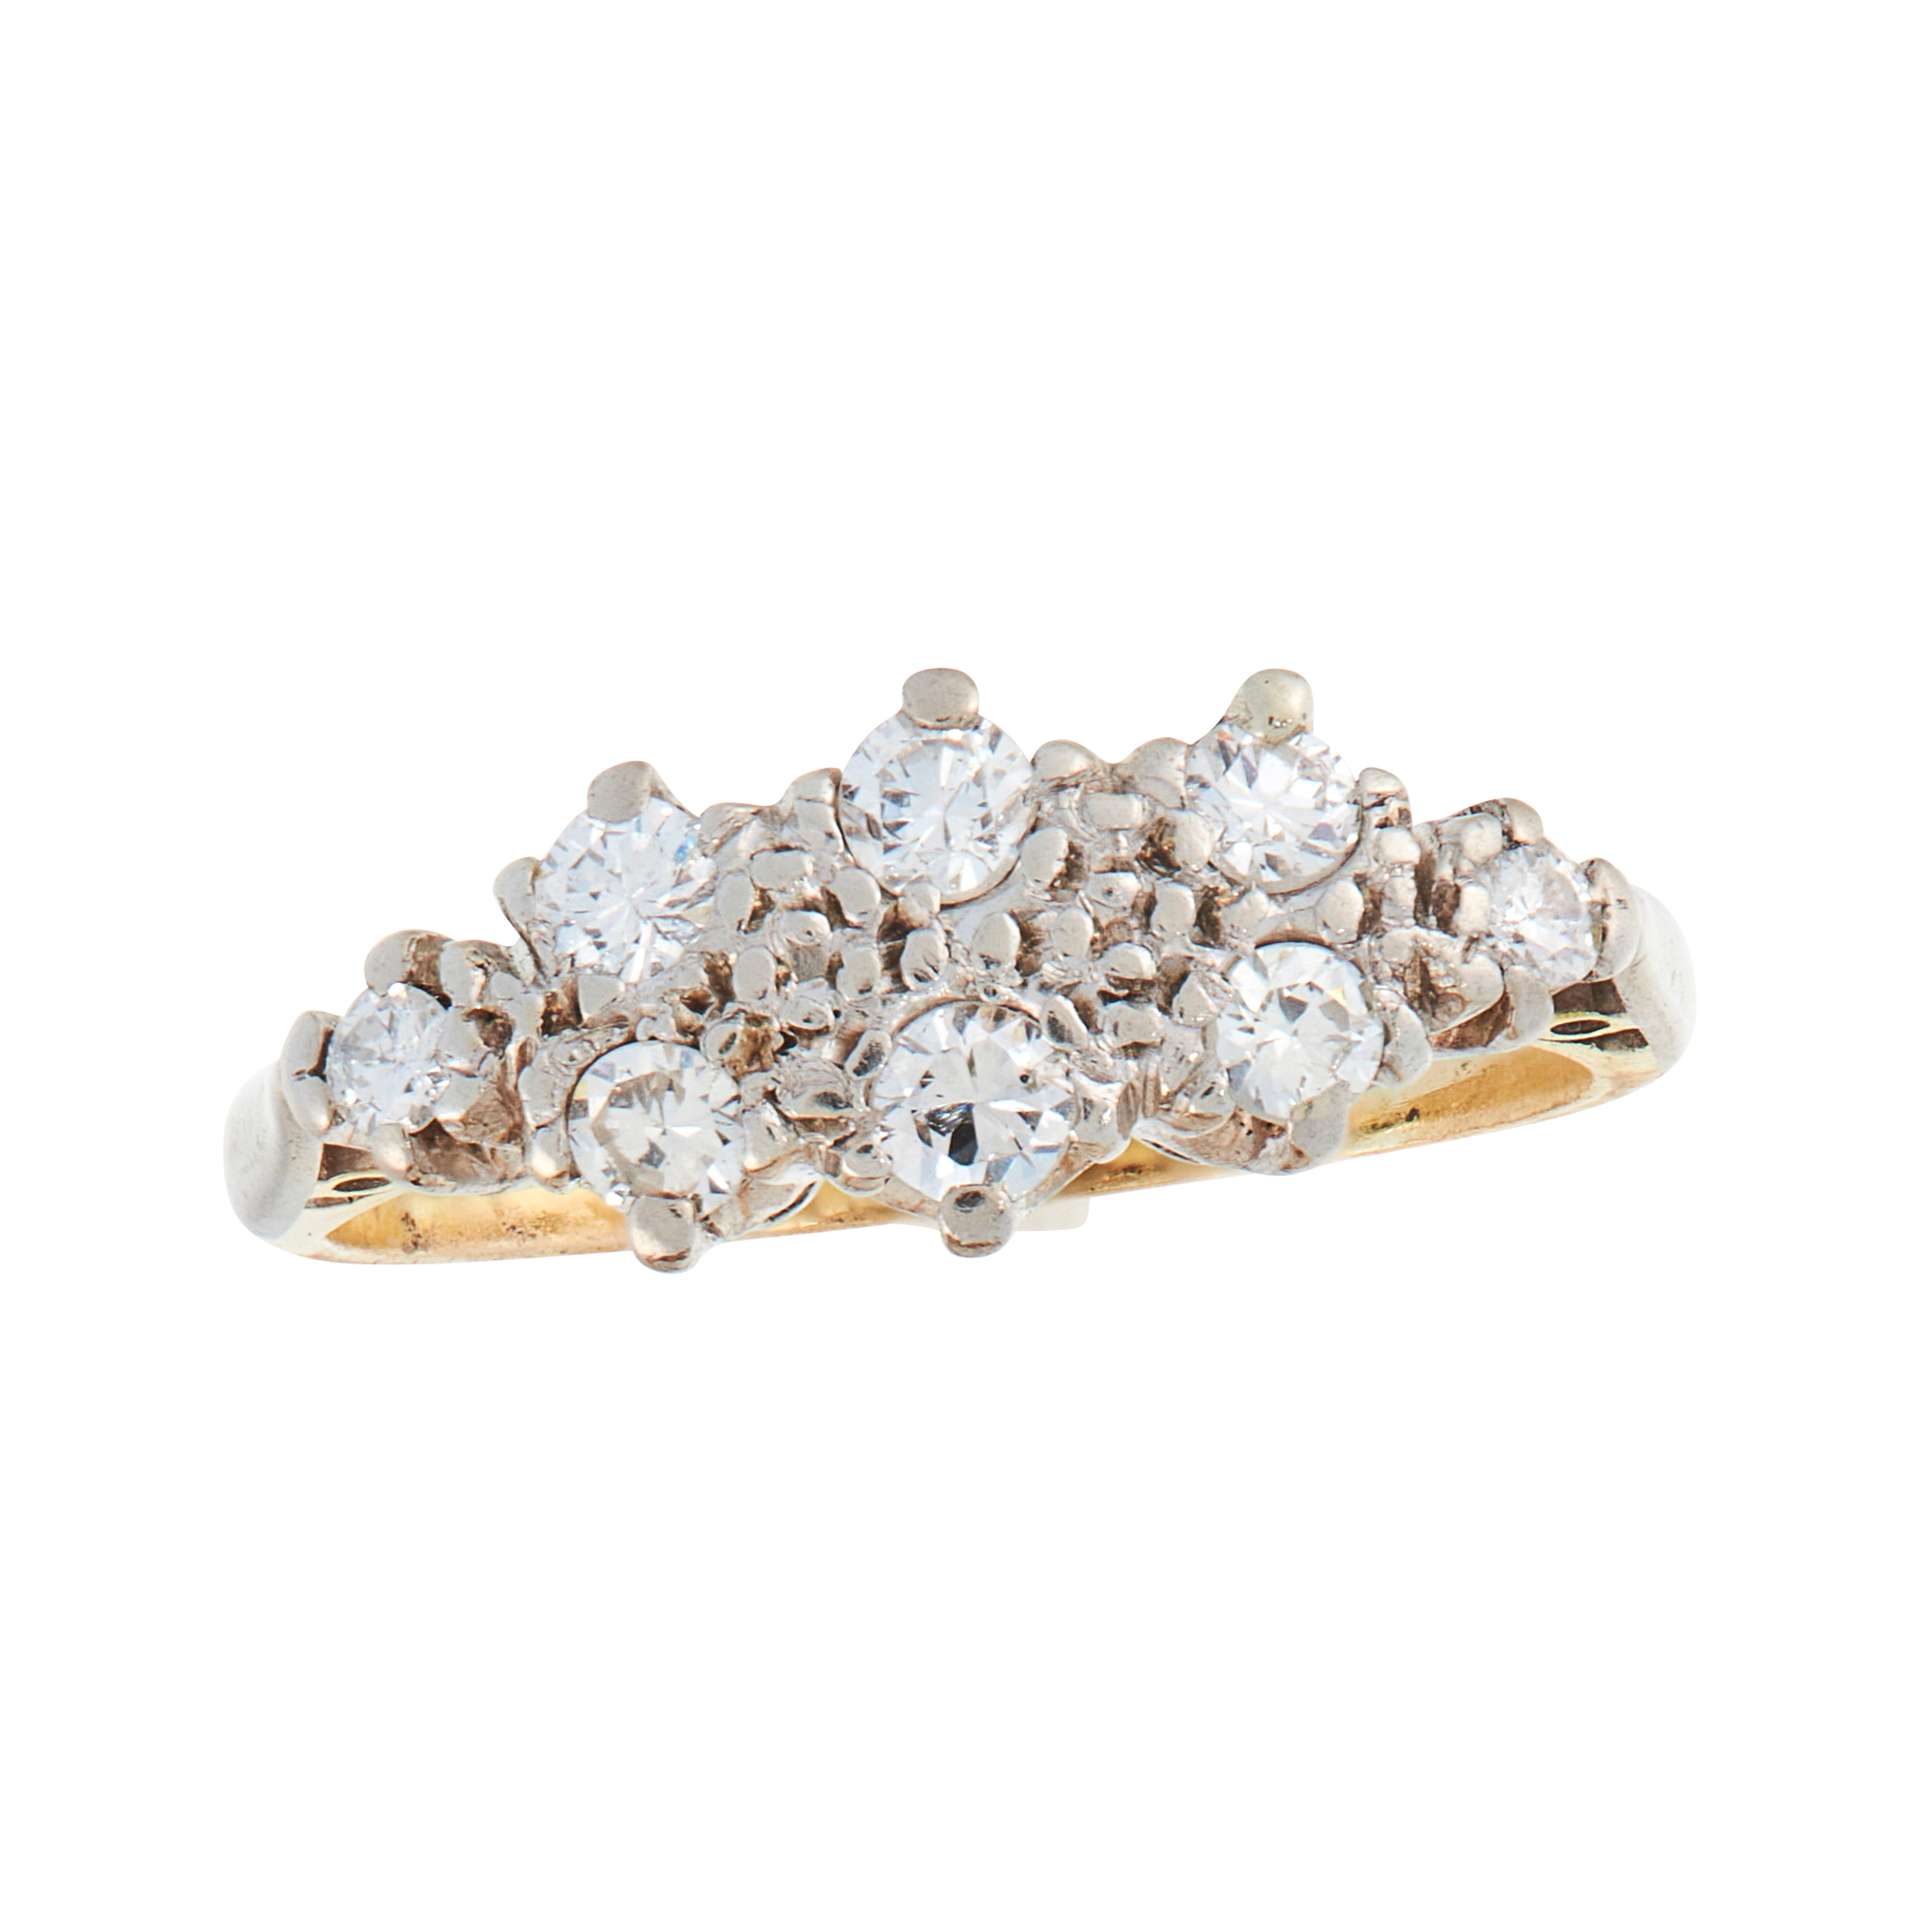 A DIAMOND DRESS RING, CIRCA 1940 in 18ct yellow gold and platinum, set with eight graduated round